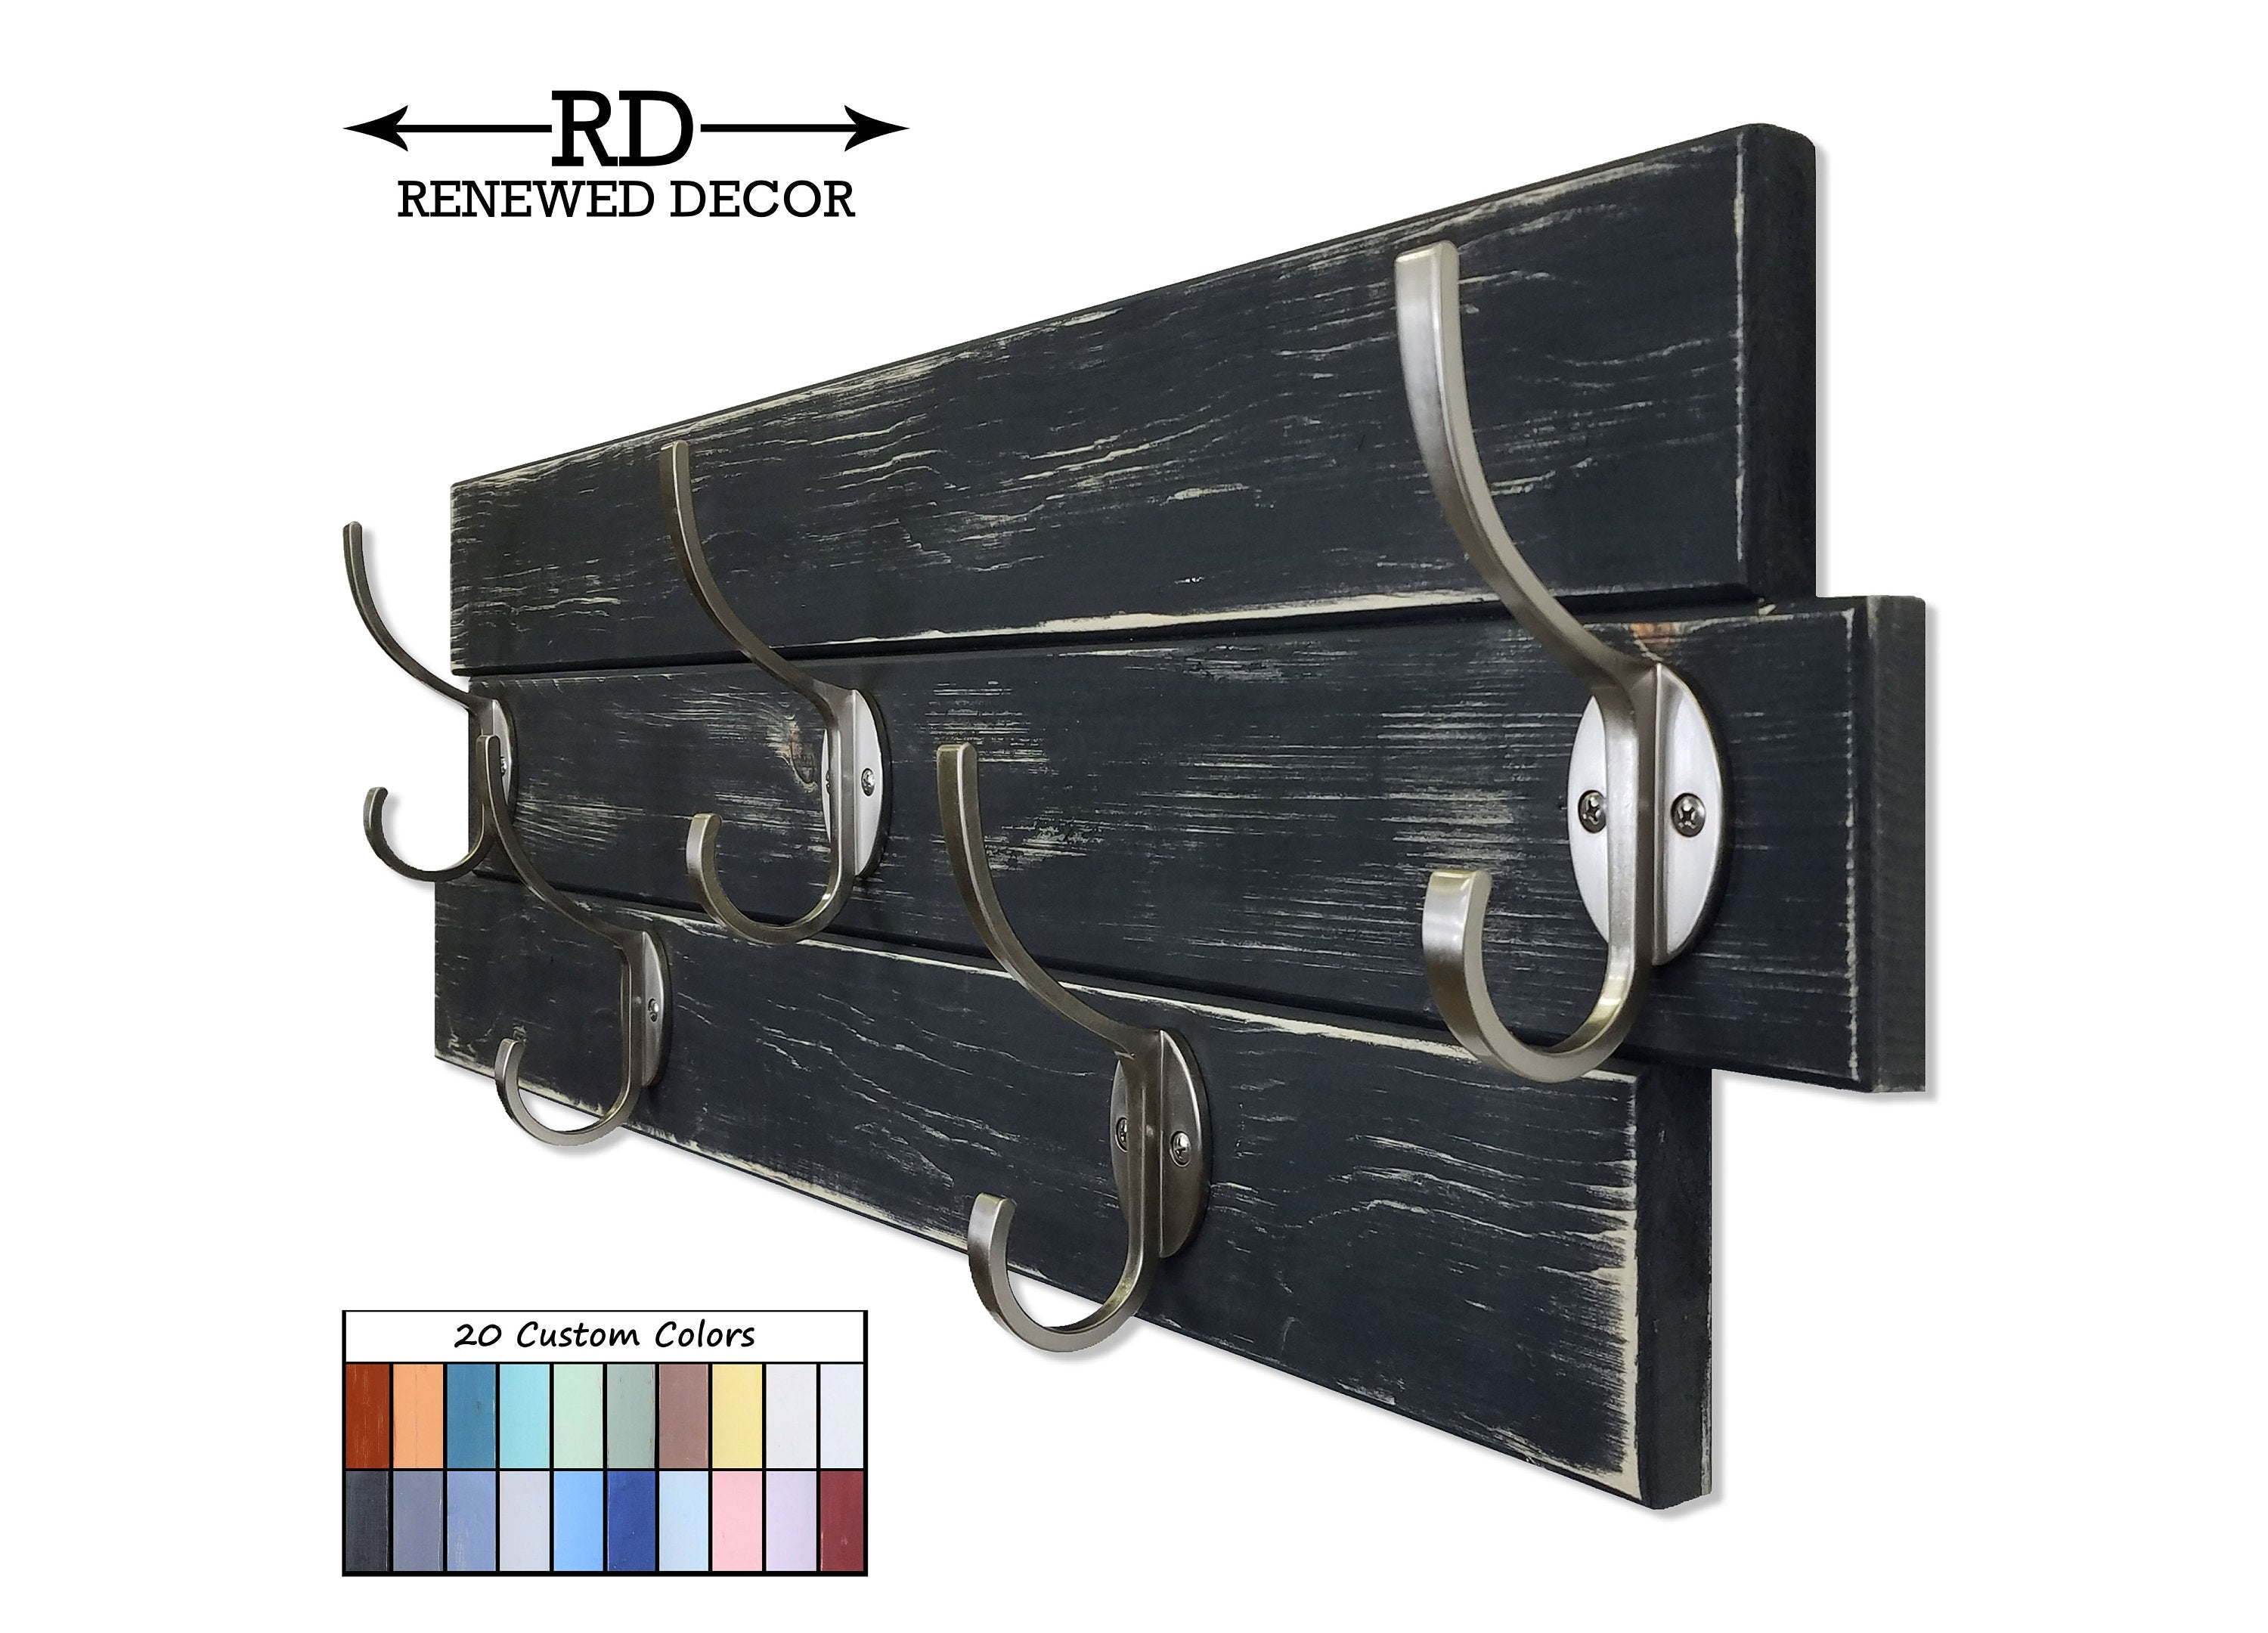 American Farmhouse Wood Wall Hook Rack - 20 Paint Colors - Renewed Decor & Storage